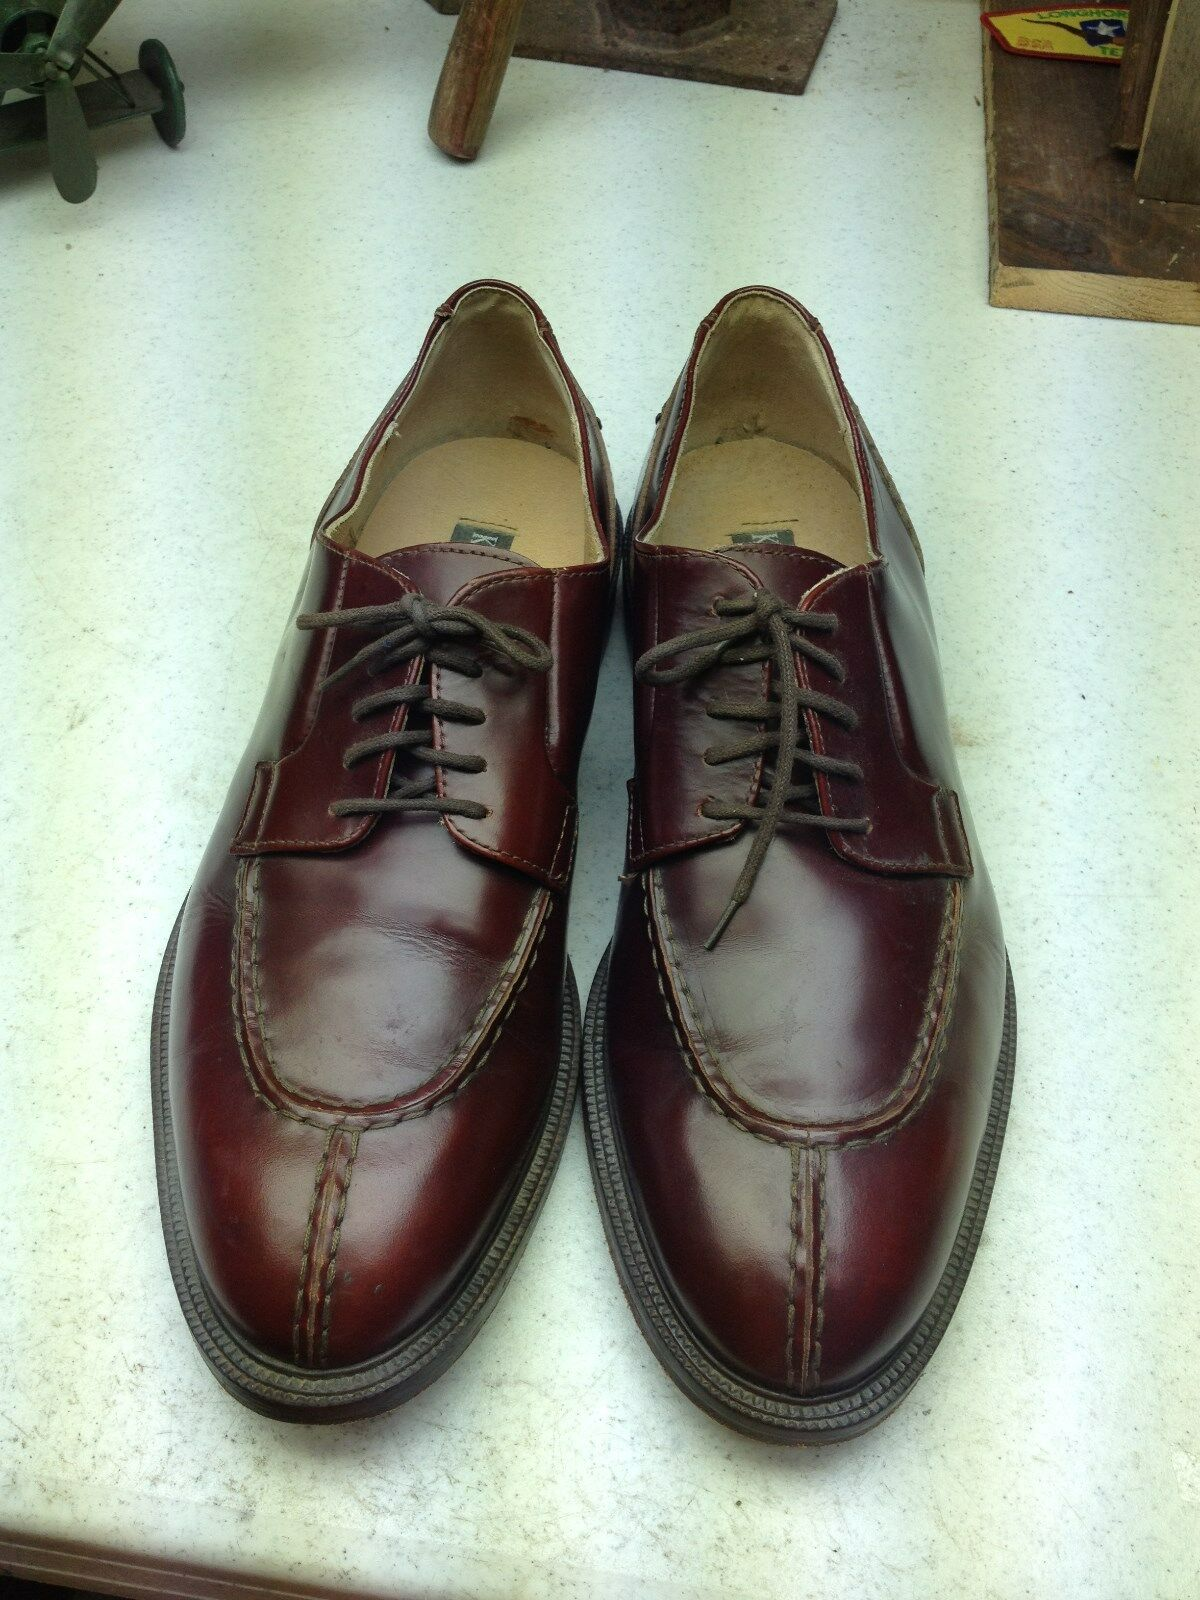 MADE IN UP ITALY KENNETH COLE BURGUNDY LEATHER LACE UP IN OXFORD BUSINESS SHOES 13 M 206ae6